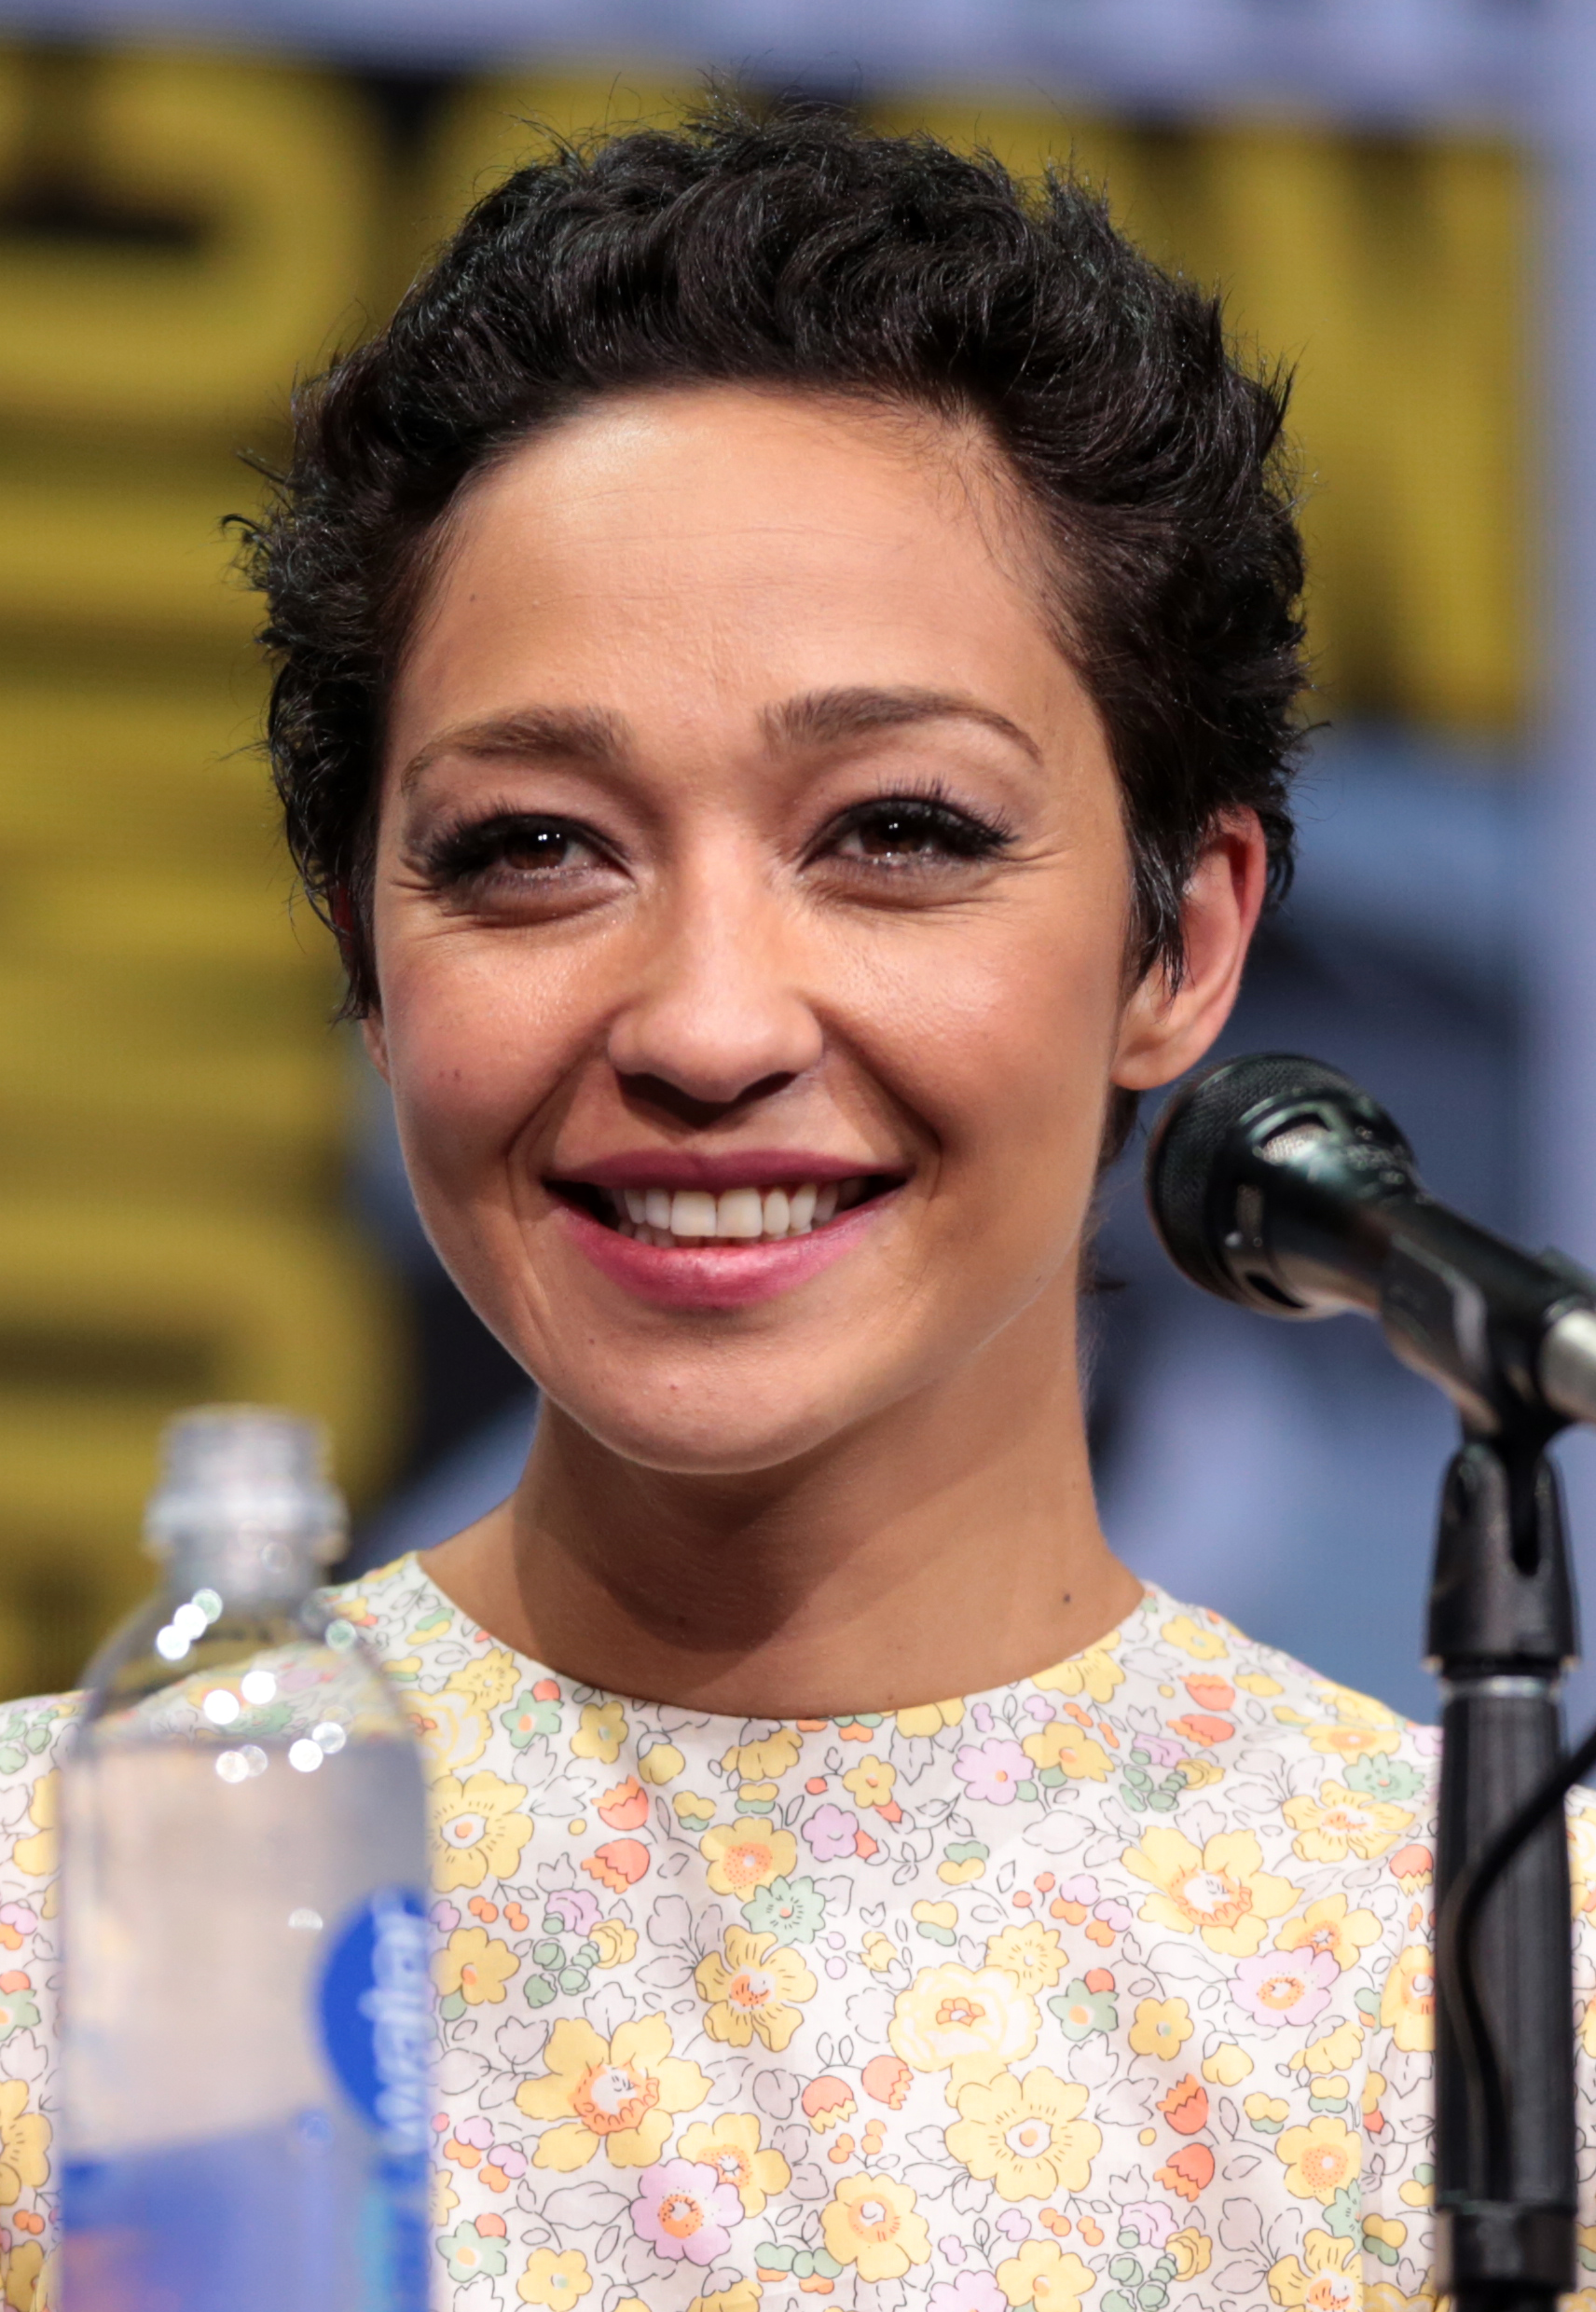 The 36-year old daughter of father (?) and mother(?) Ruth Negga in 2018 photo. Ruth Negga earned a  million dollar salary - leaving the net worth at 5 million in 2018